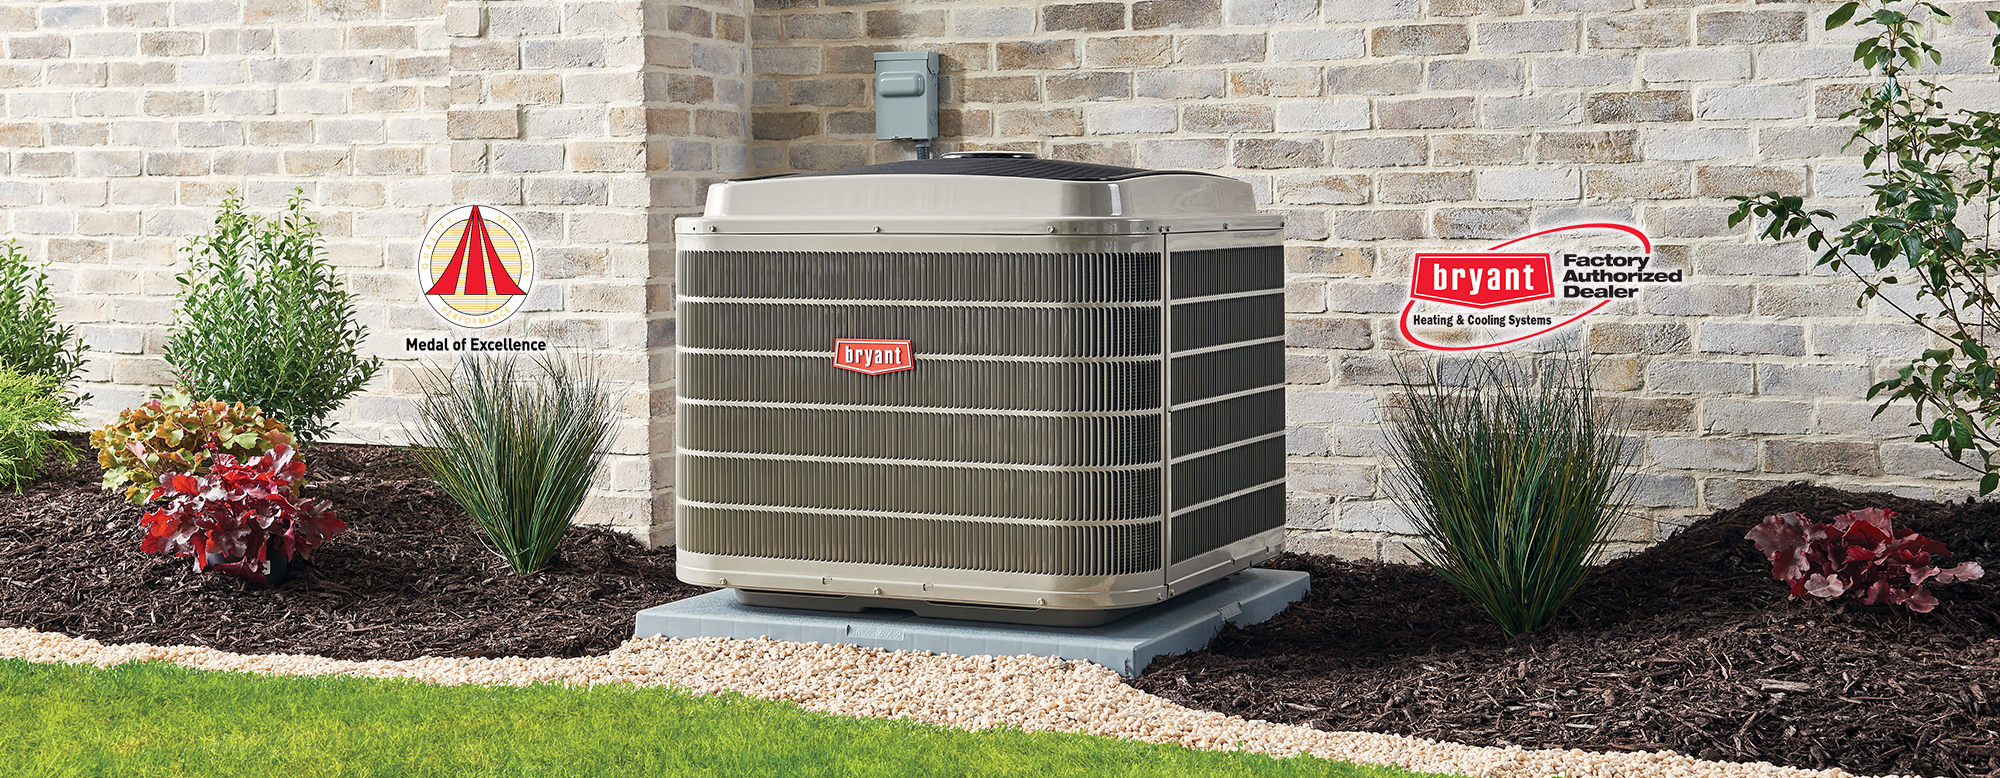 Bryant AC unit outdoors with medal of excellence logo